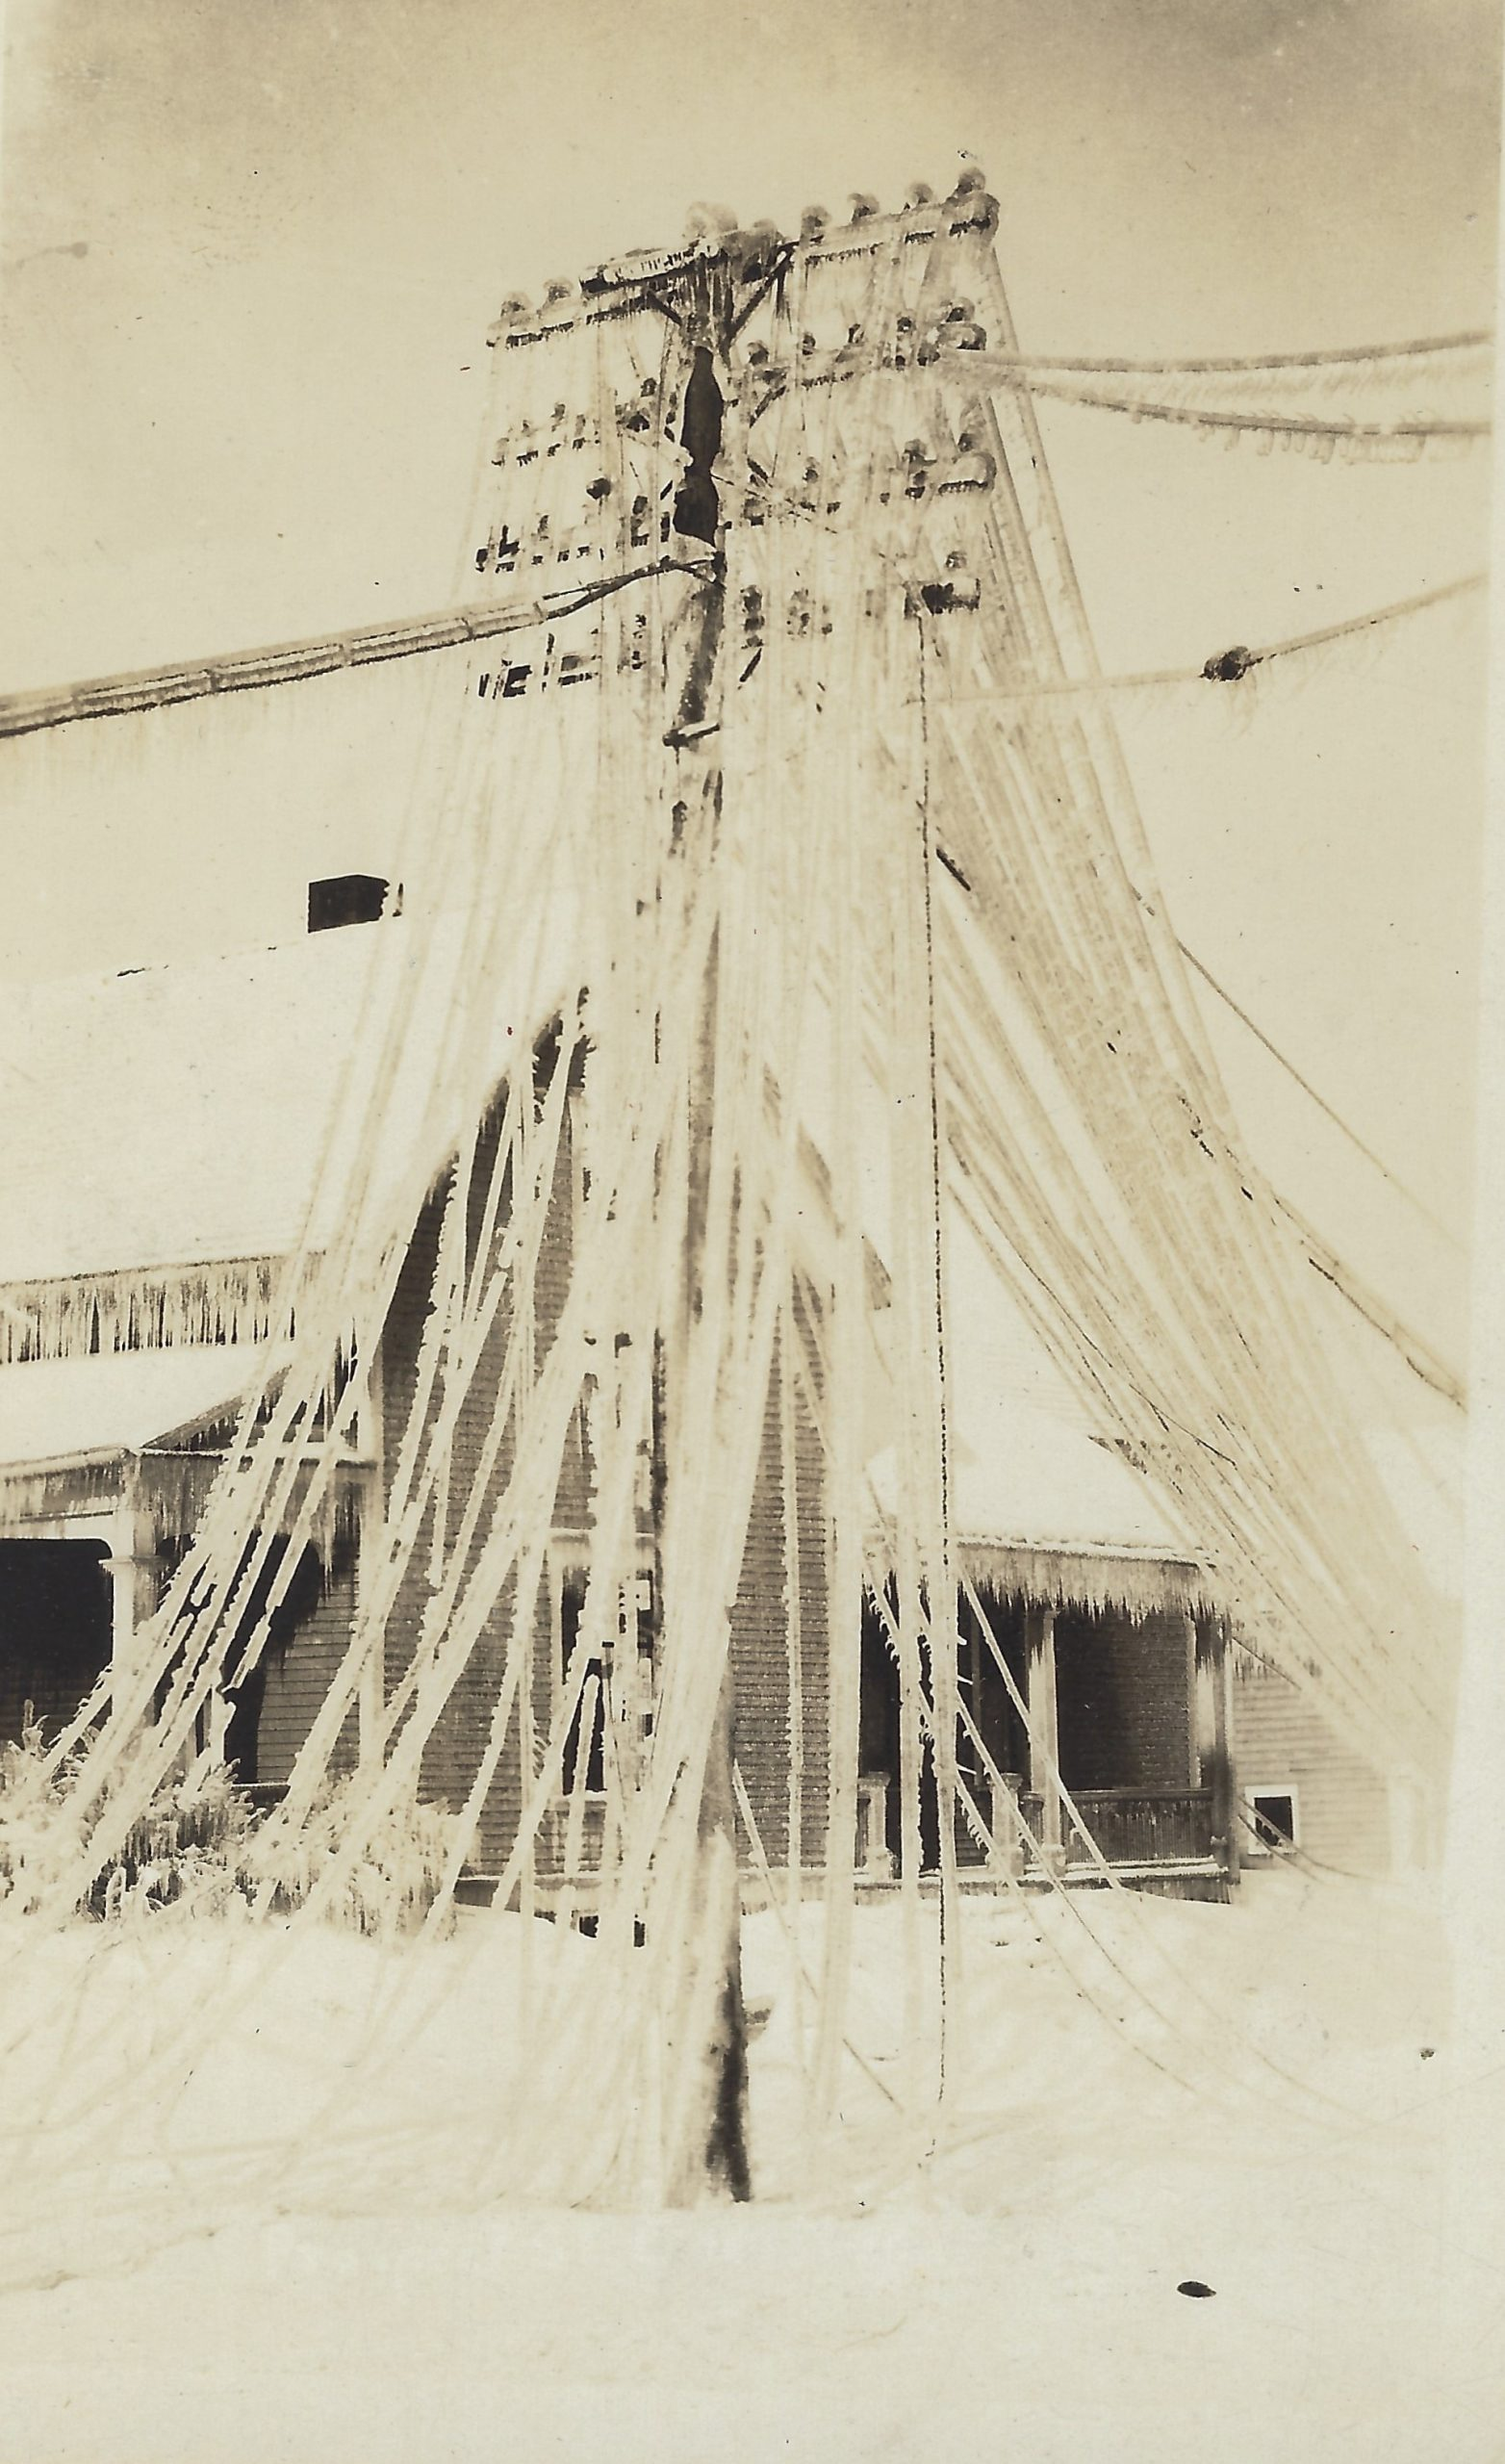 Cadillac – Weather – 1922 Ice Storm, Power Lines Weighed Down By Ice (4)